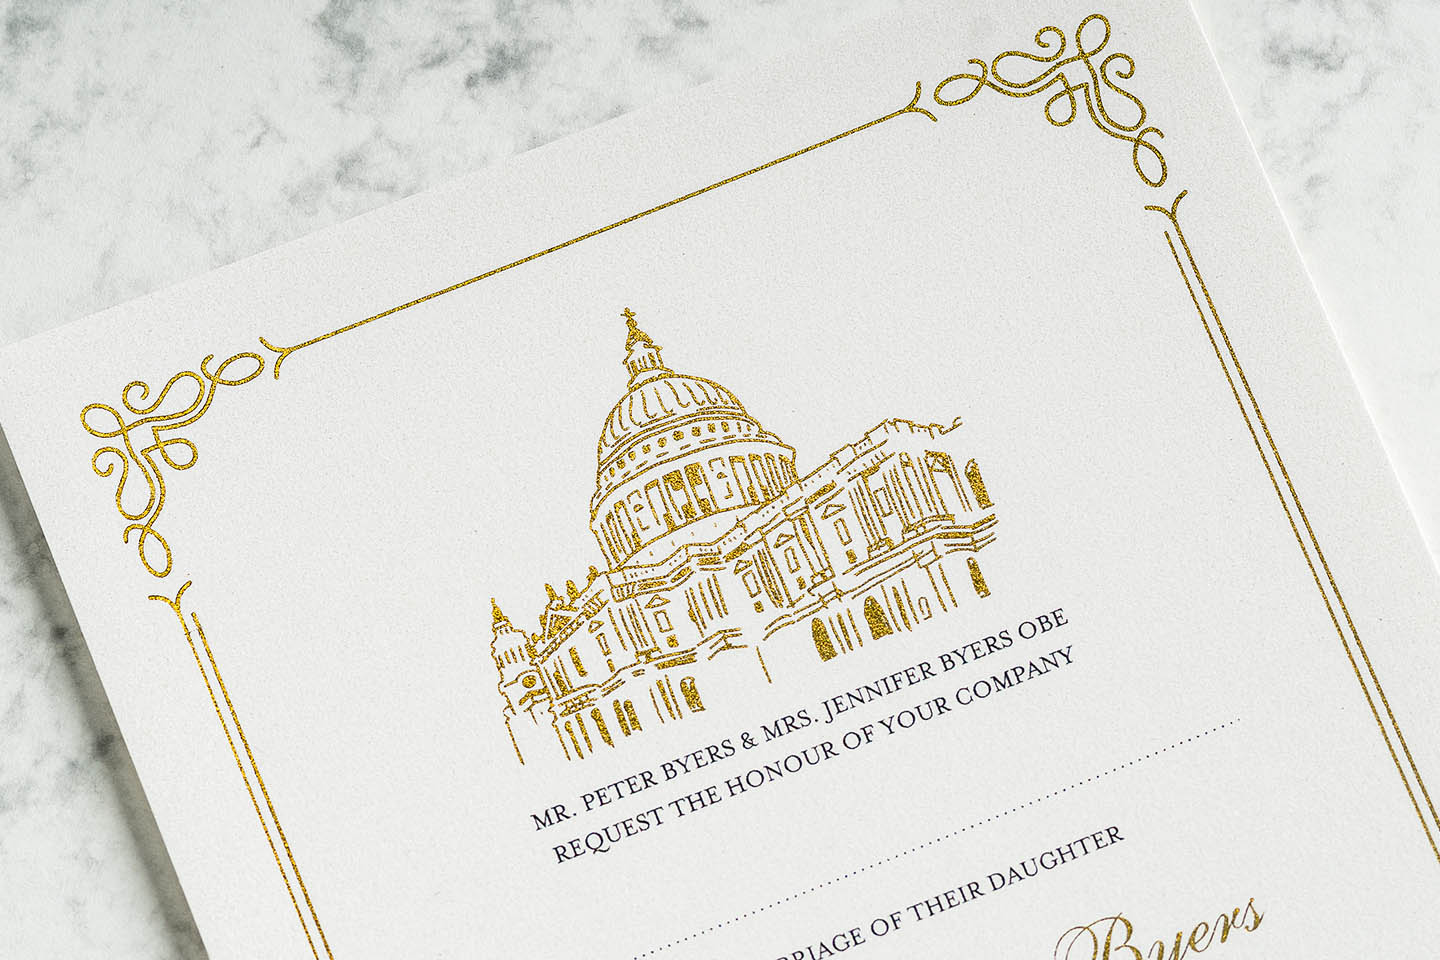 Wedding Invitation Wording: How to Get it Right - Foil ...